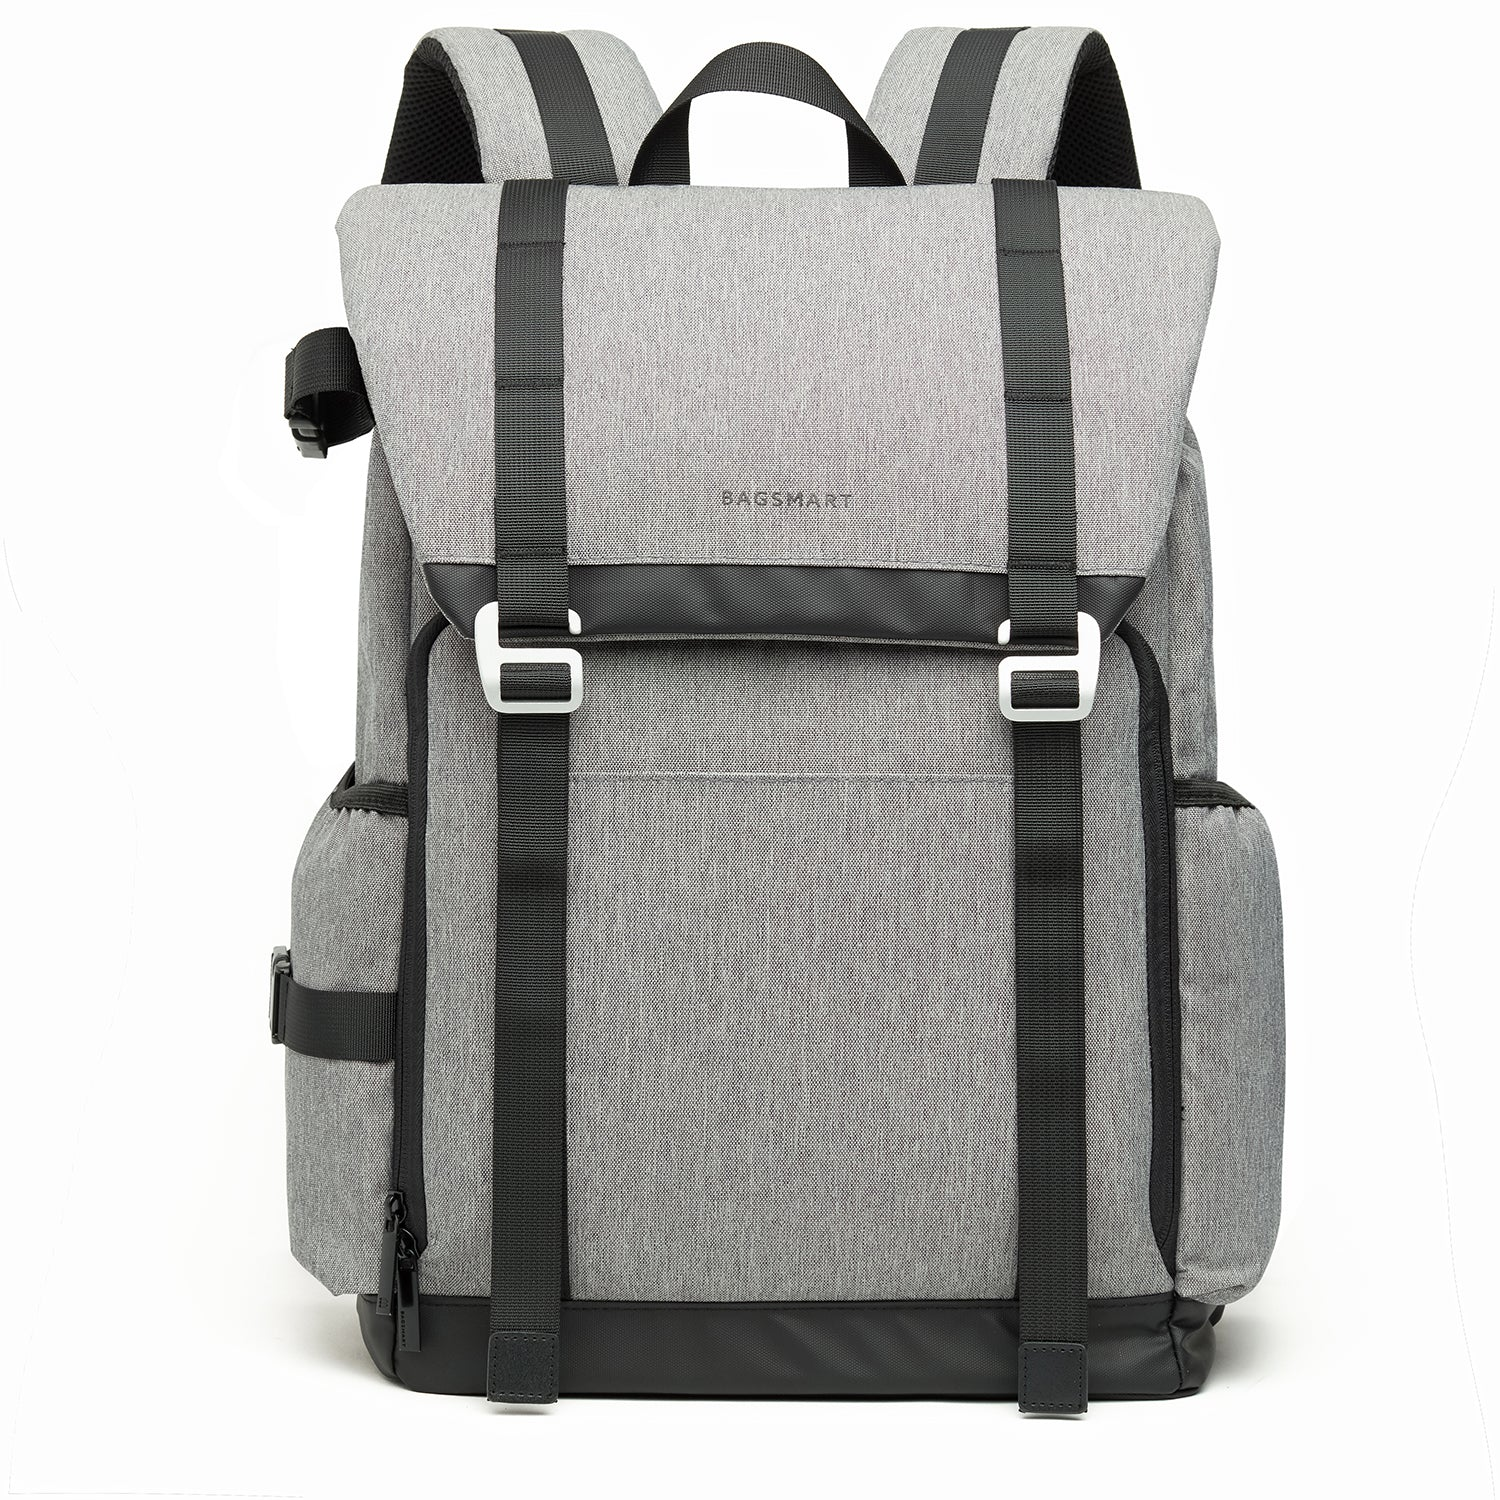 Best Large DSLR Backpack for Travel Hiking with Padded Custom ...